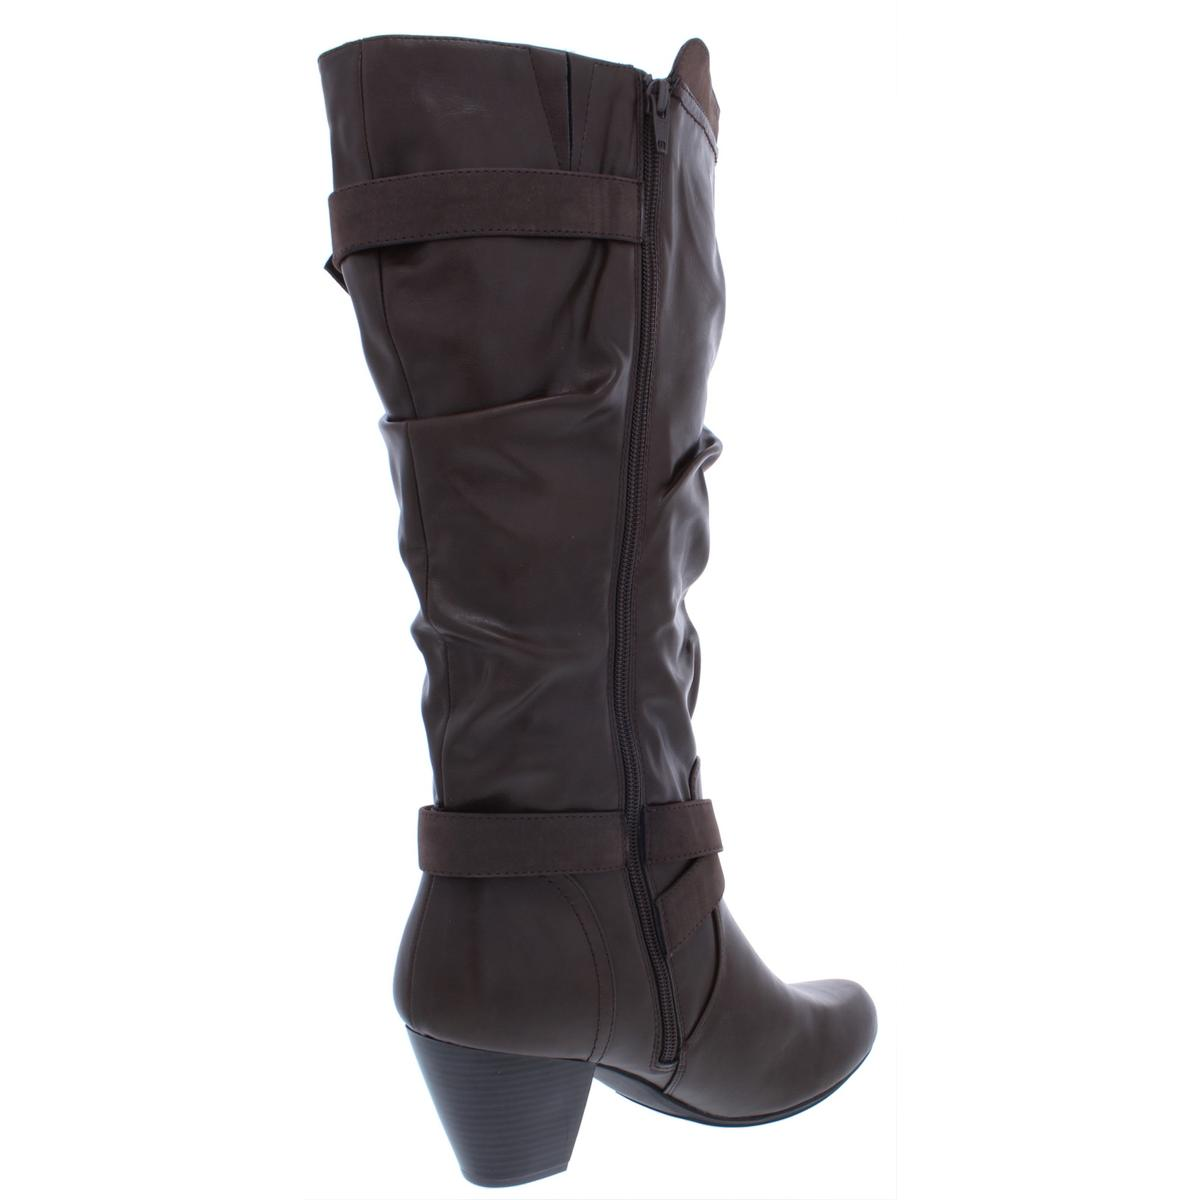 Rialto Damenschuhe Crystal Faux Stiefel Leder Knee-High Dress Stiefel Faux Heels BHFO 3178 664e73